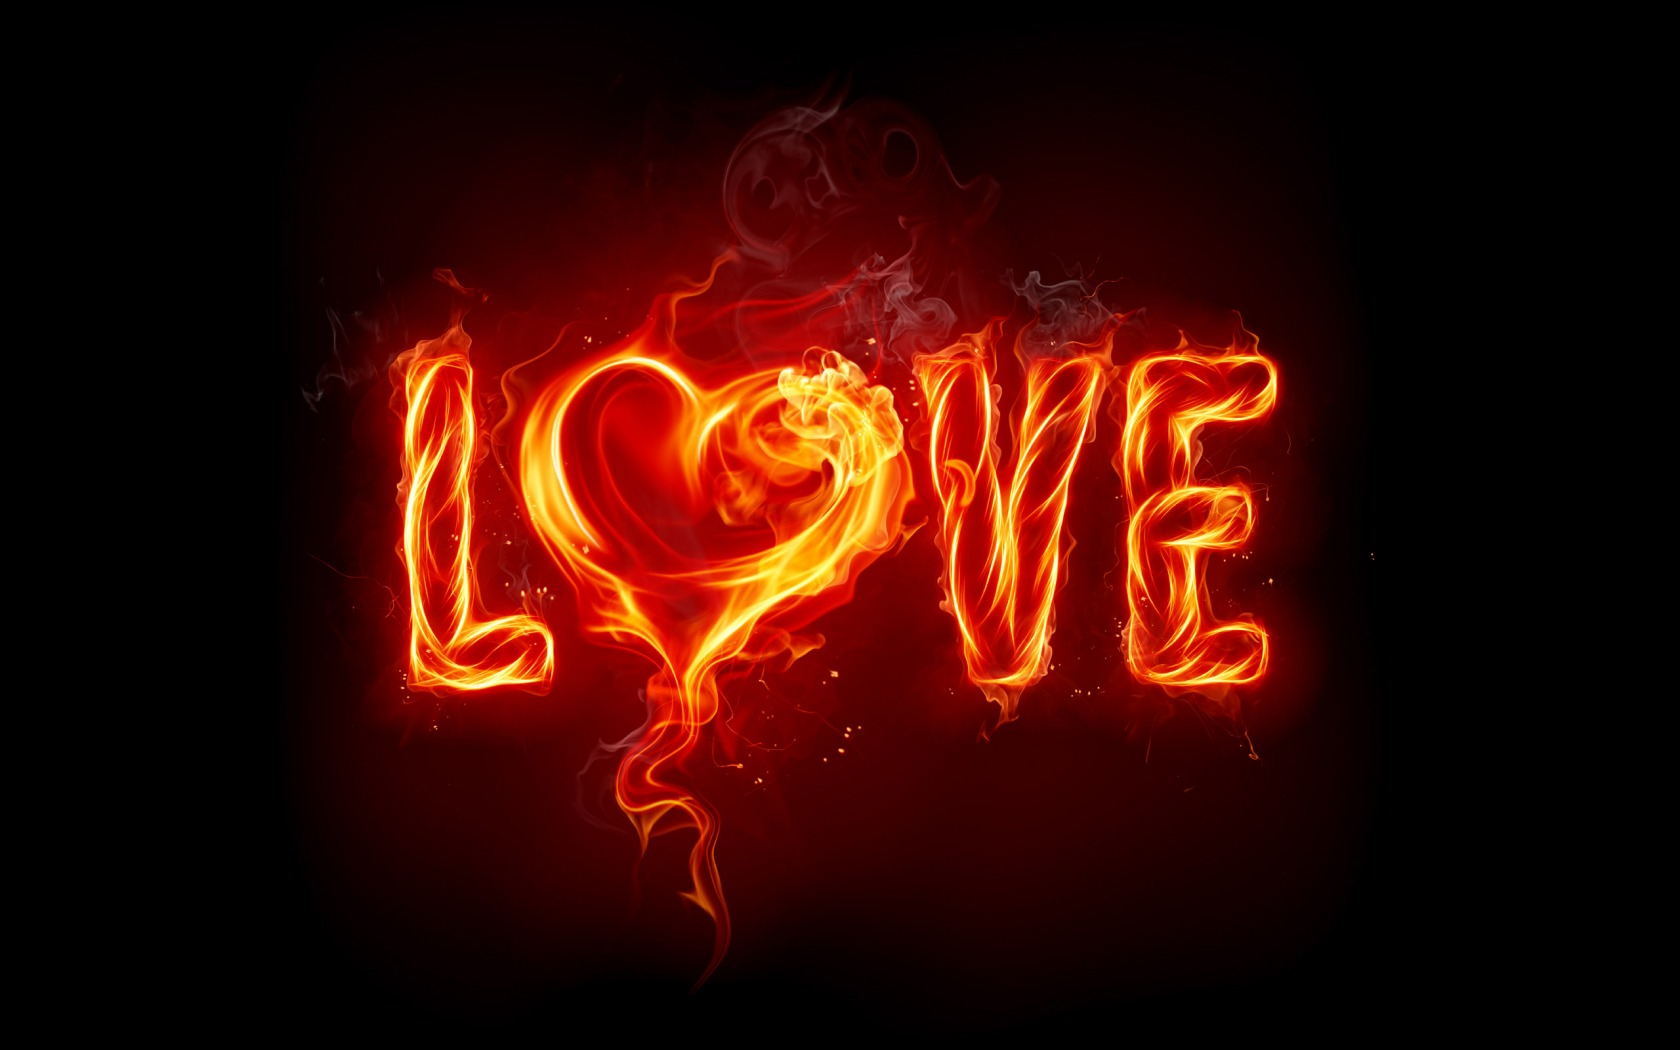 Love Fire Wallpaper Valentines Day Holidays Wallpapers